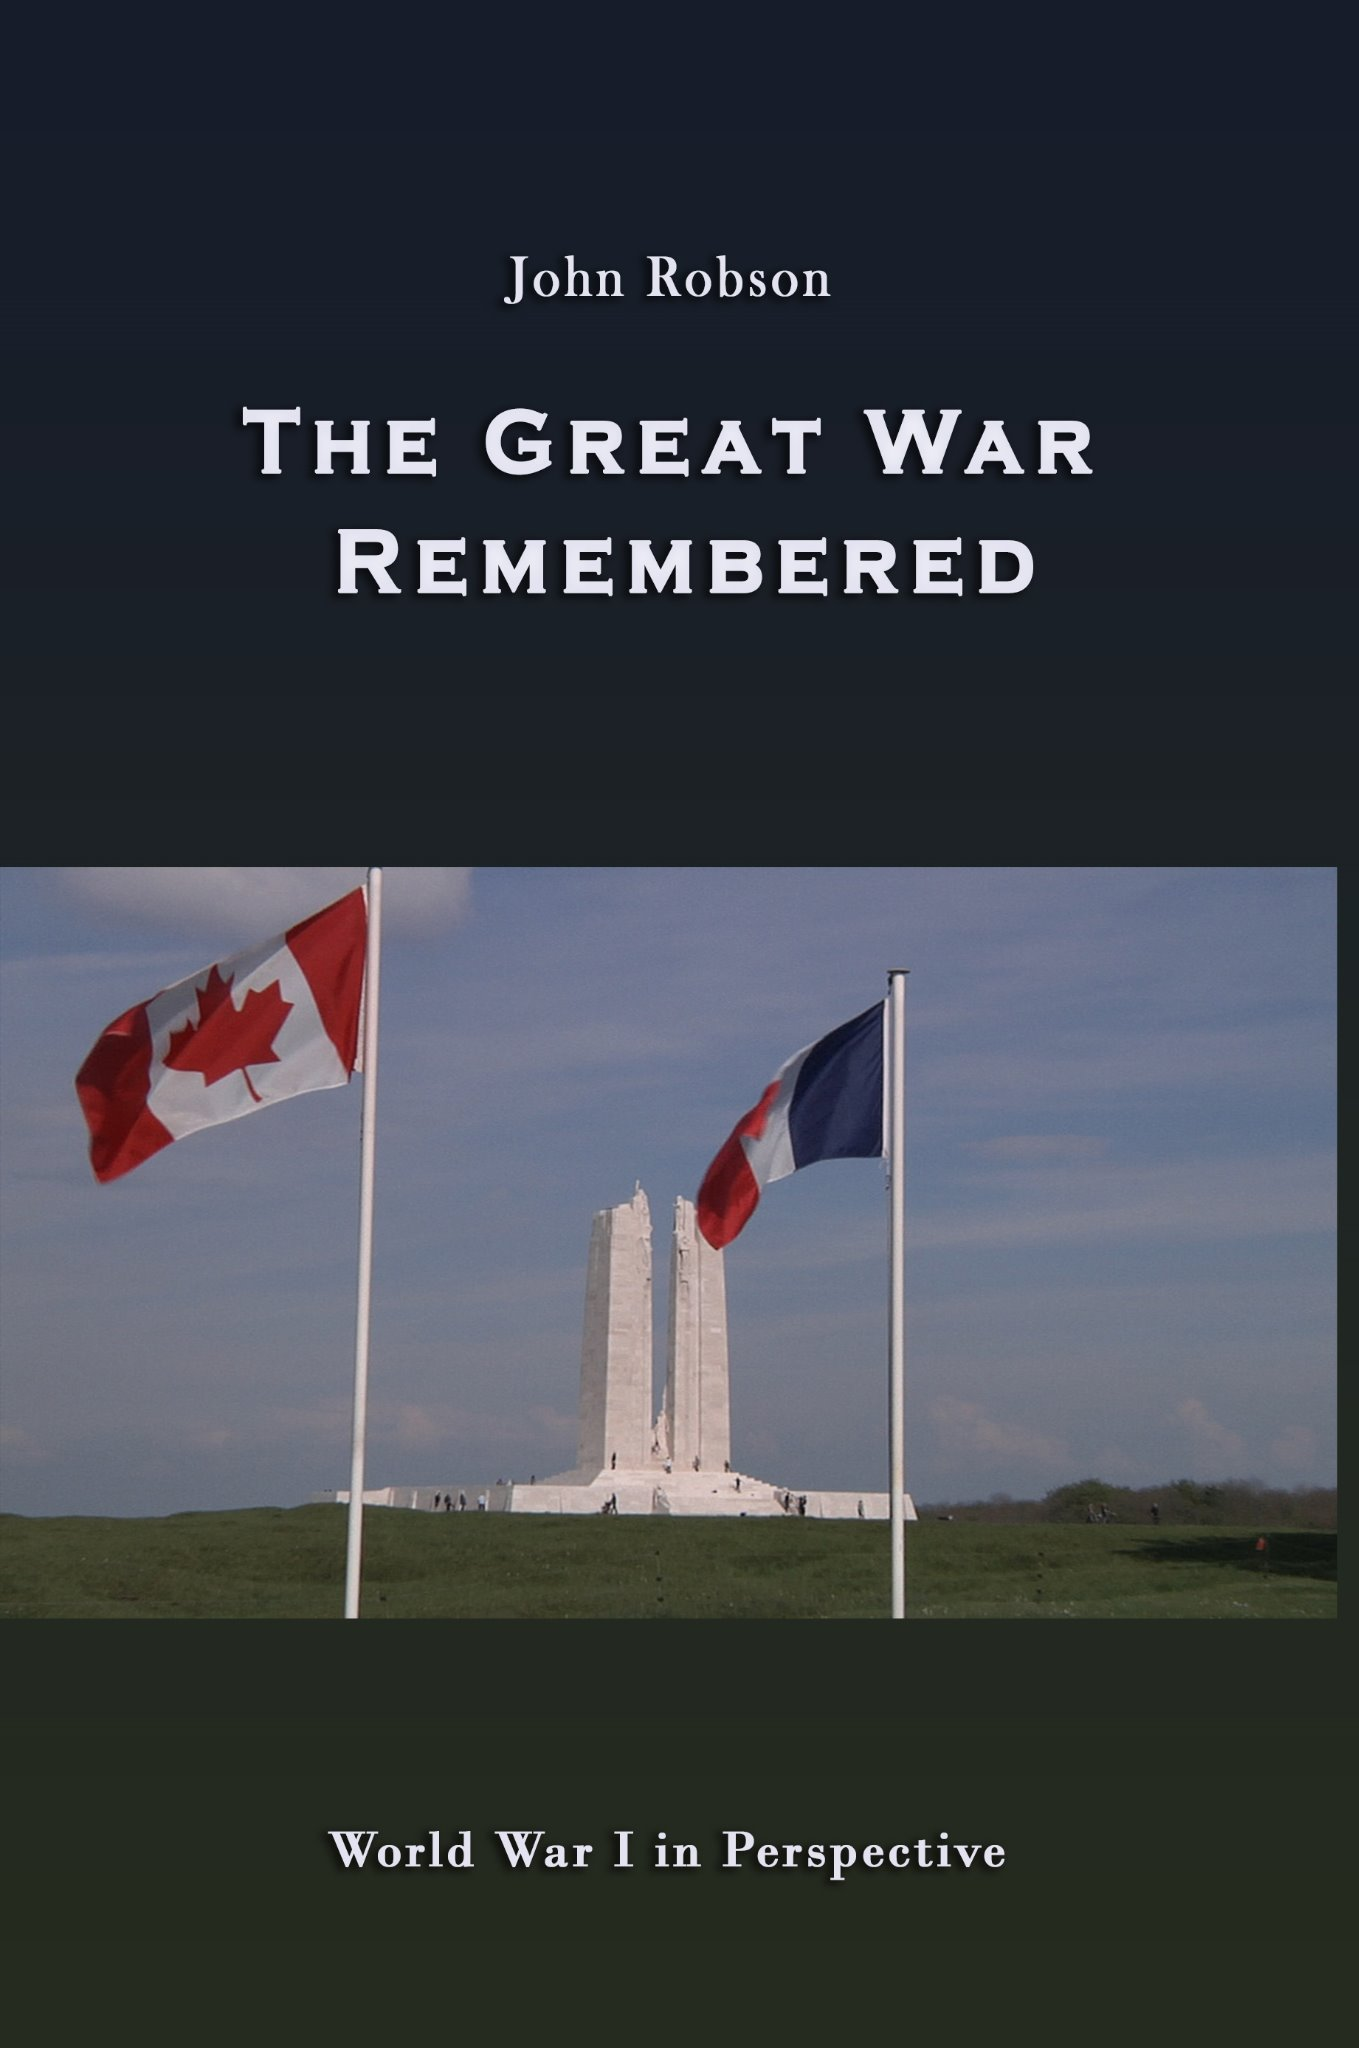 [BOOK] The Great War Remembered: World War I in Perspective